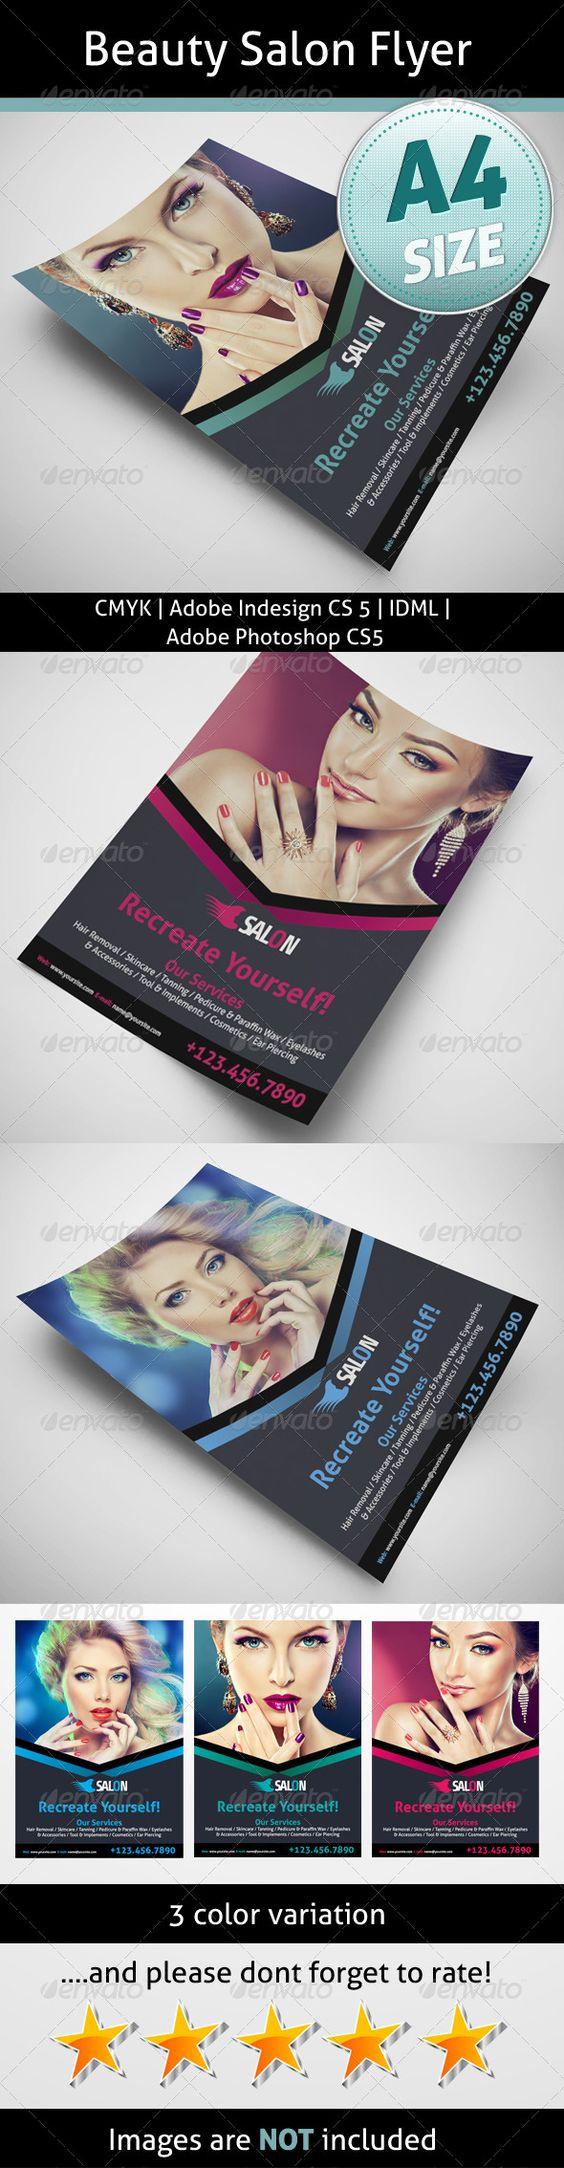 Beauty Salon Flyer  #GraphicRiver         A4 8.2677×11.6929   Bleed 5 mm   InDesign CS5   Photoshop CS5   300dpi   Idml   CMYK   Aller:  .fontsquirrel /fonts/Aller   Share:  .fontsquirrel /fonts/Share-Regular   Info file included   Images are not included   If you need any help with your purchase please contact me   Photos are not included. If you want it then just send me a message after your purchase     Created: 24August13 GraphicsFilesIncluded: PhotoshopPSD #JPGImage…